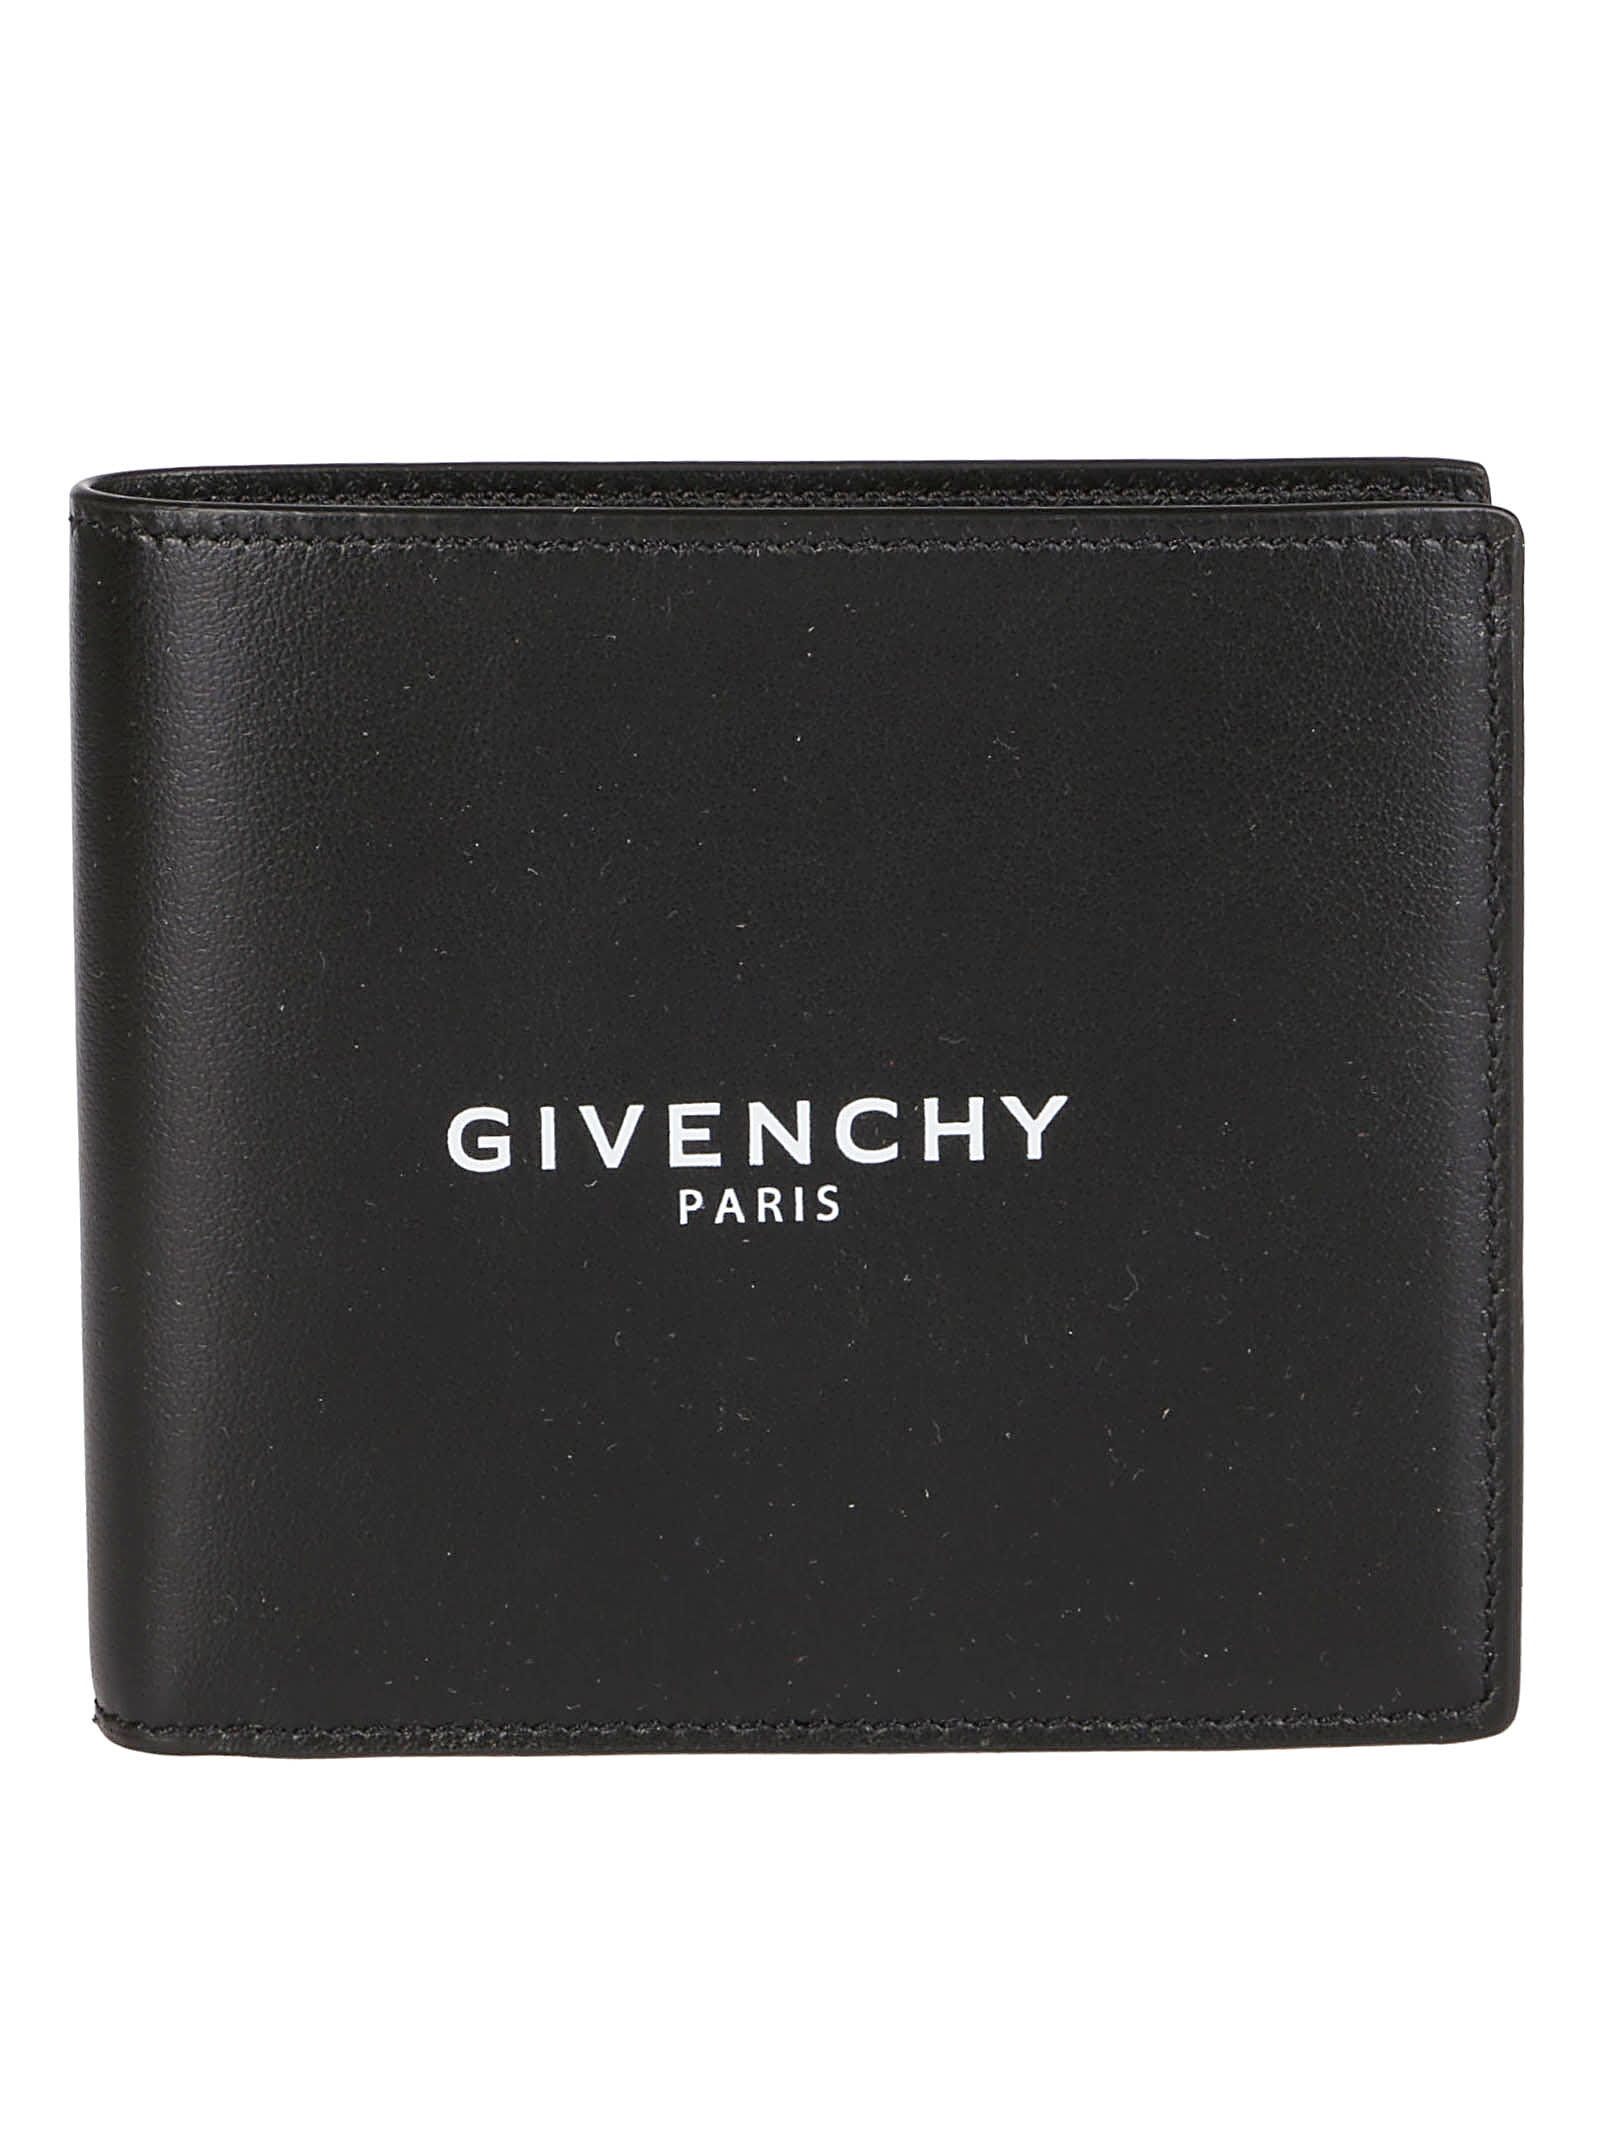 Givenchy Black Leather Wallet